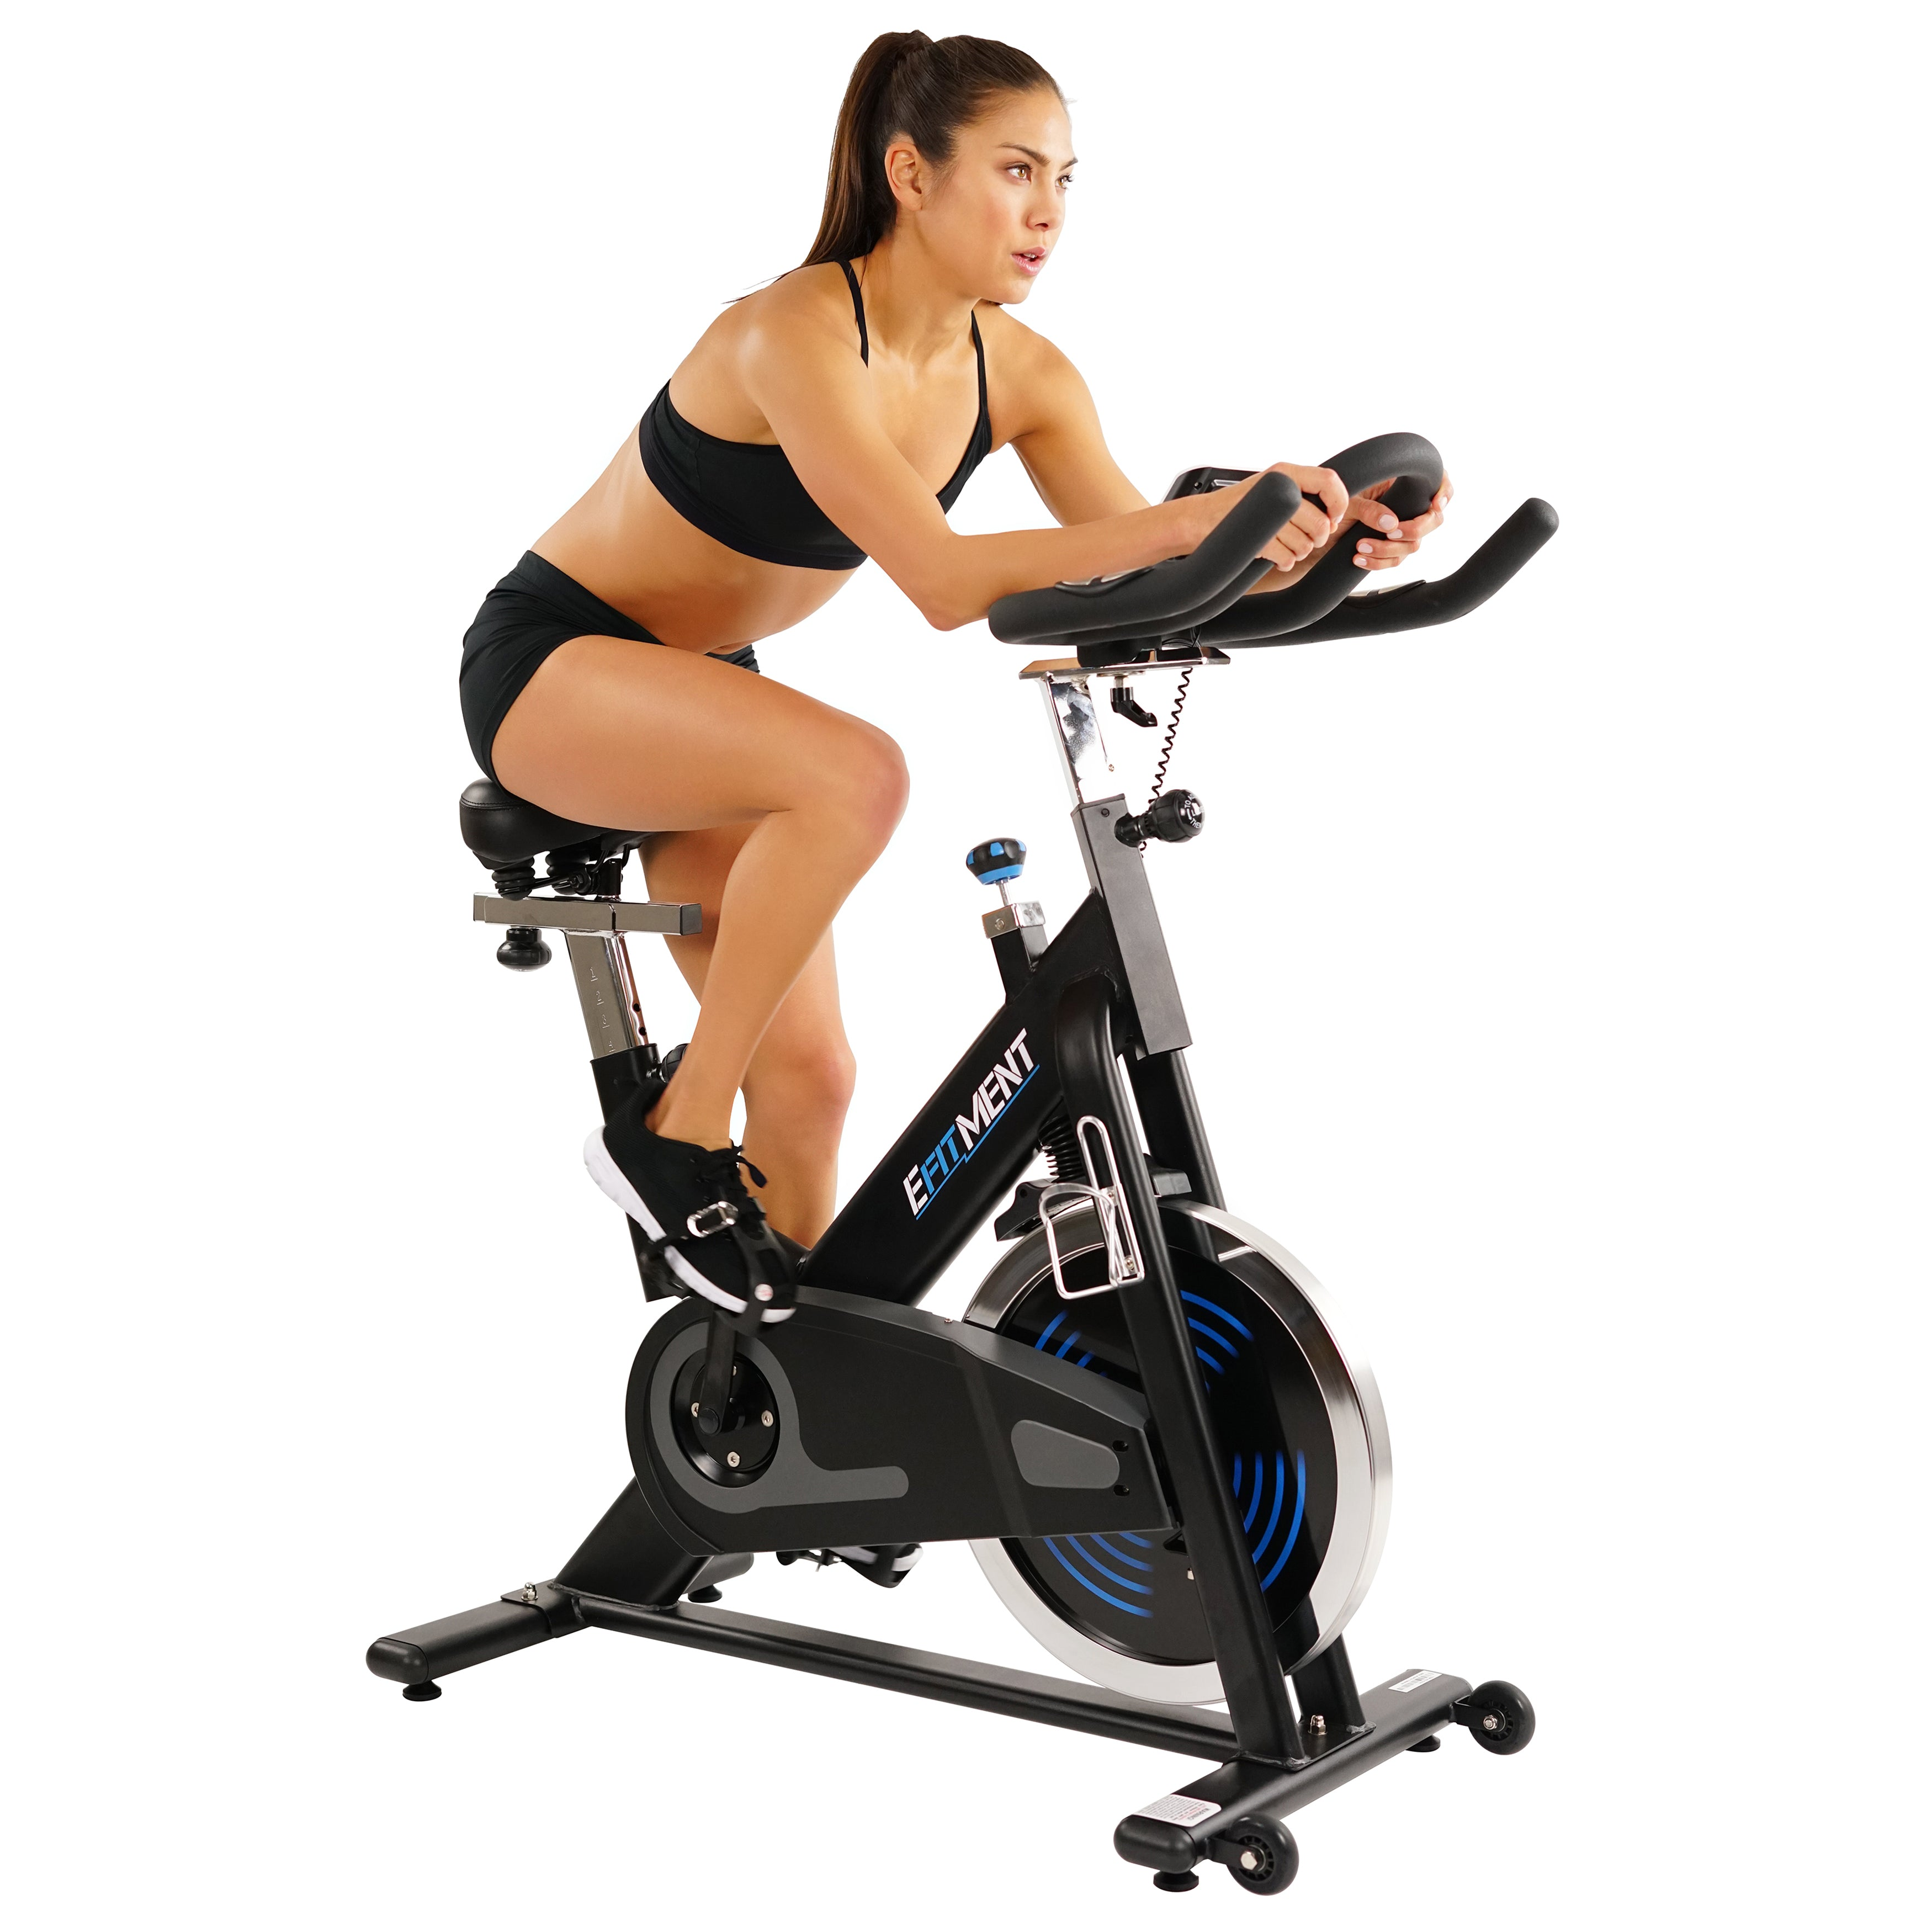 woman riding indoor cycle bike